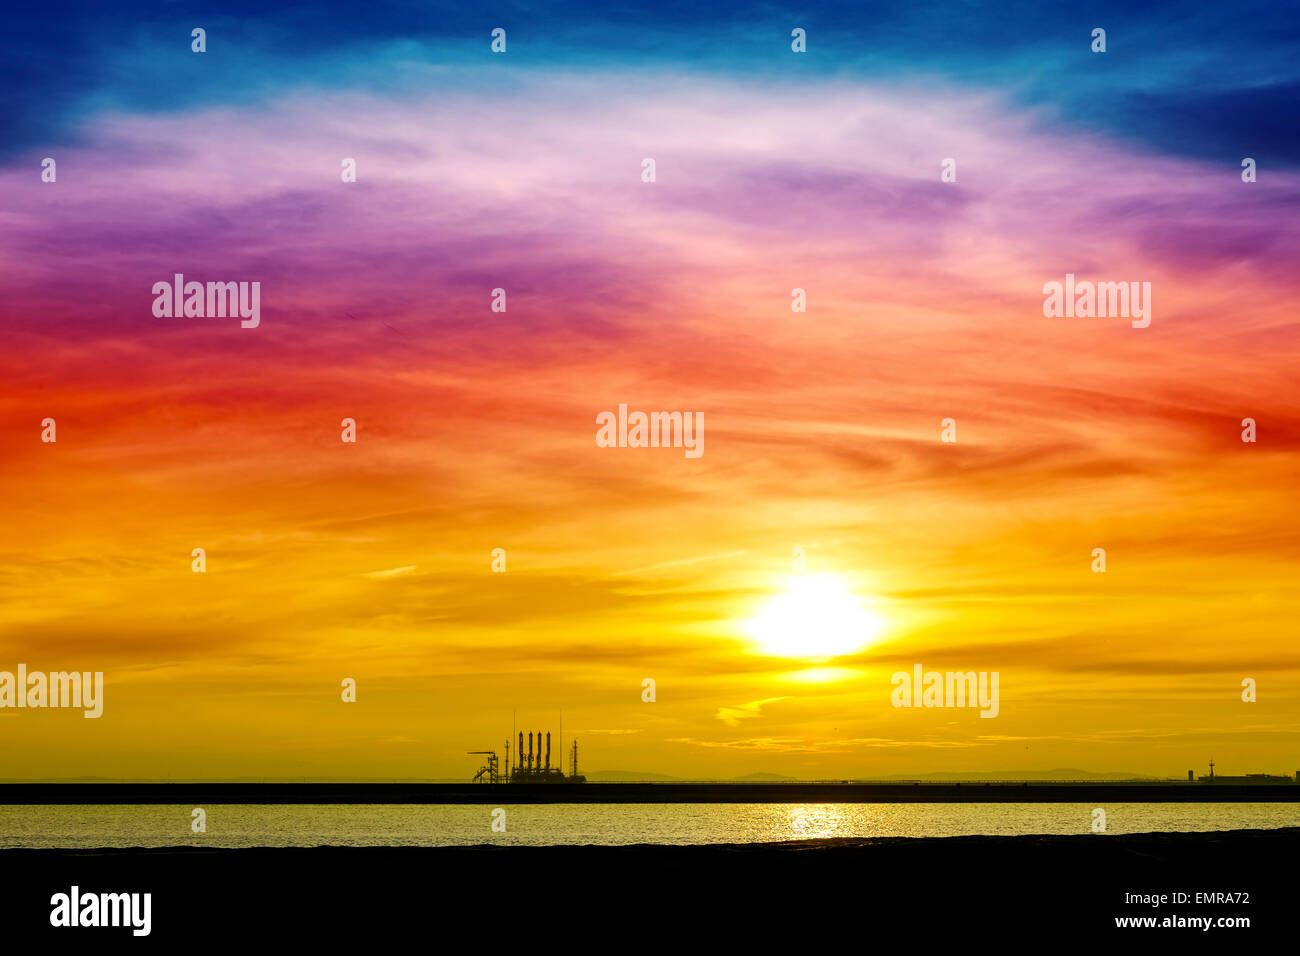 Lever du soleil sur l'infrastructure industrielle colorés dans le port de Swinoujscie, Pologne. Photo Stock